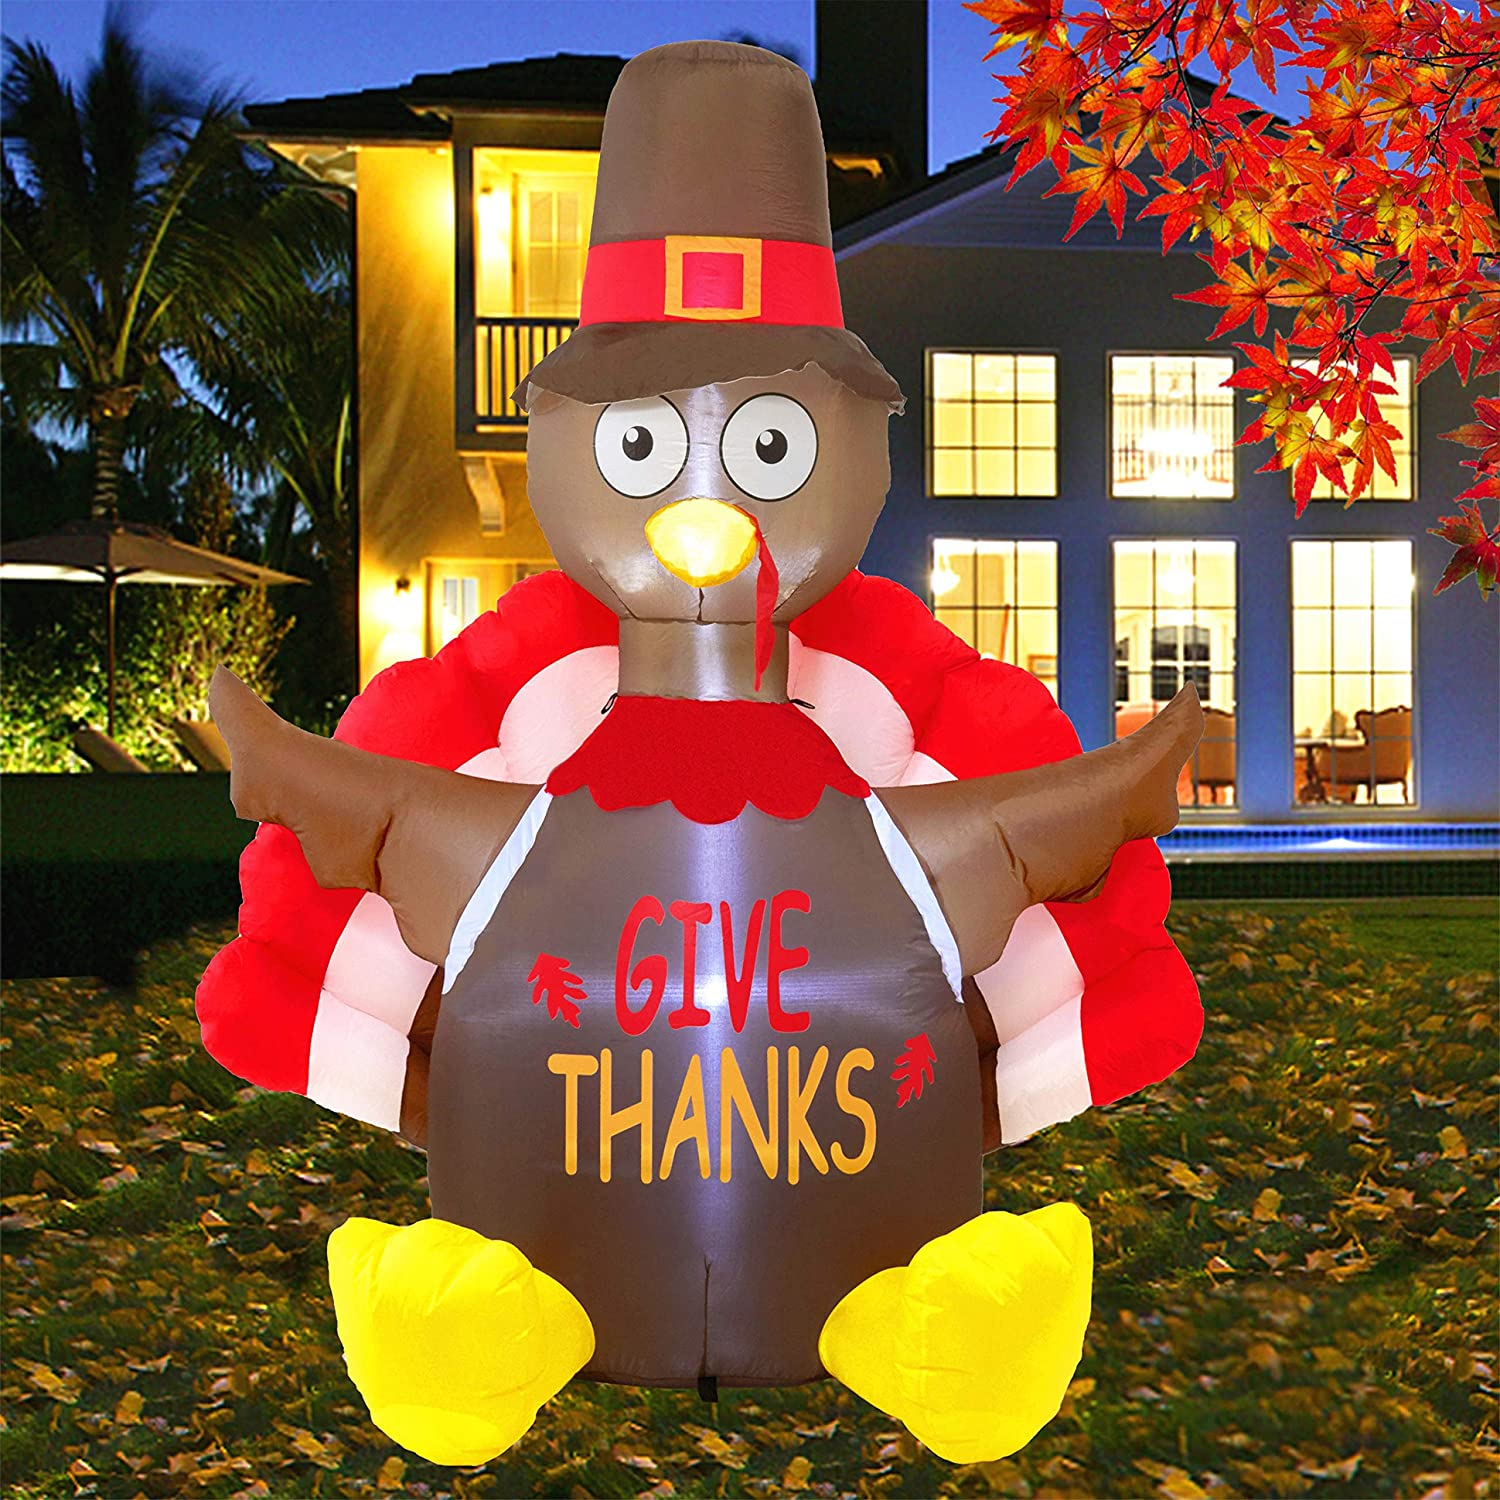 Twinkle Star Thanksgiving Decorations Inflatable Lighted Turkey, 6FT Blow up Turkey Happy Thanksgiving, Thanksgiving Inflatables with LED Lights Yard Lawn Decor Display Autumn Fall Outdoor Decor